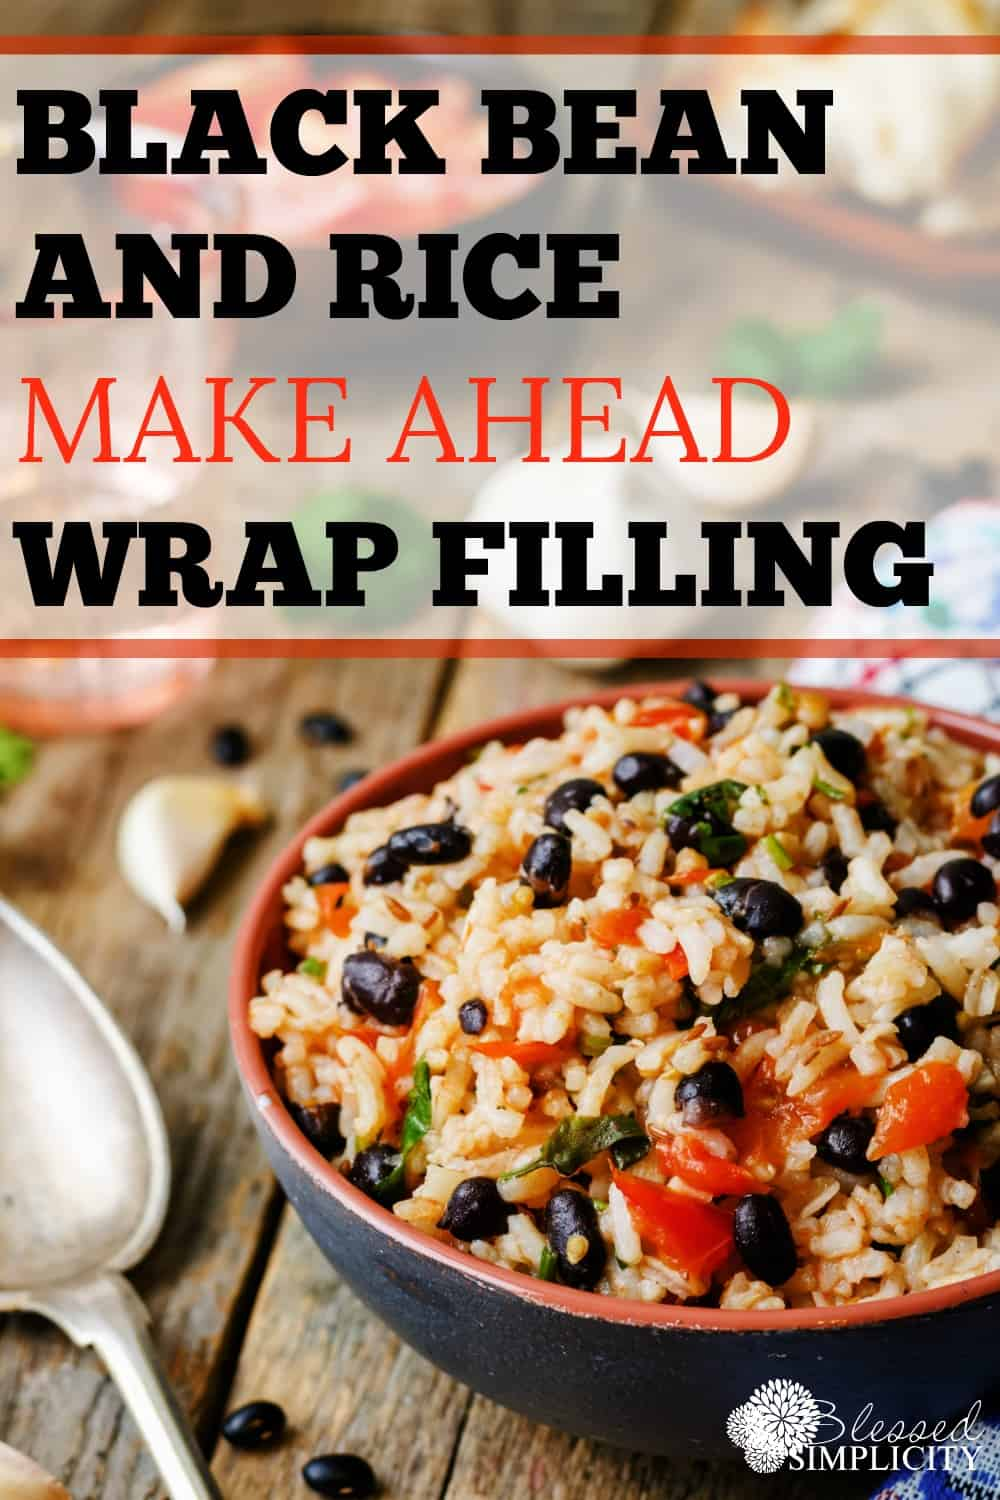 This black beans and rice wrap filling is inexpensive and easy to prepare. It is also a meal that can also be prepared completely oven free. Healthy and nutritious for the kids to eat by the pool in the summertime!